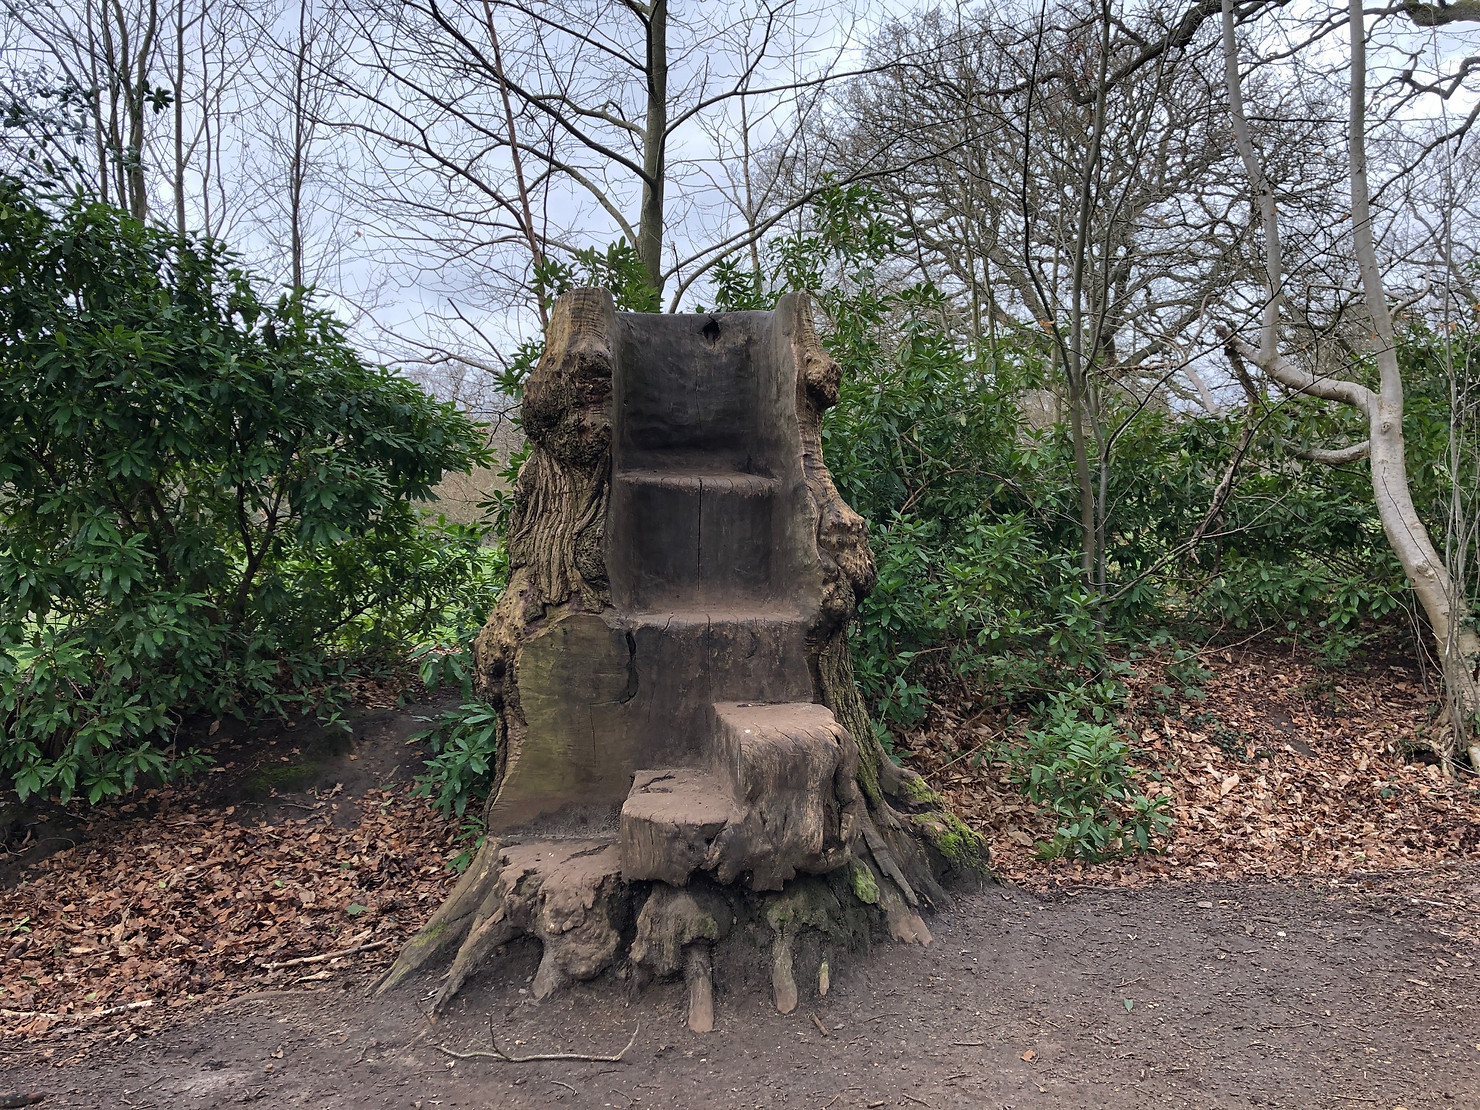 Story Telling Throne, Lily Hill Park, Bracknell